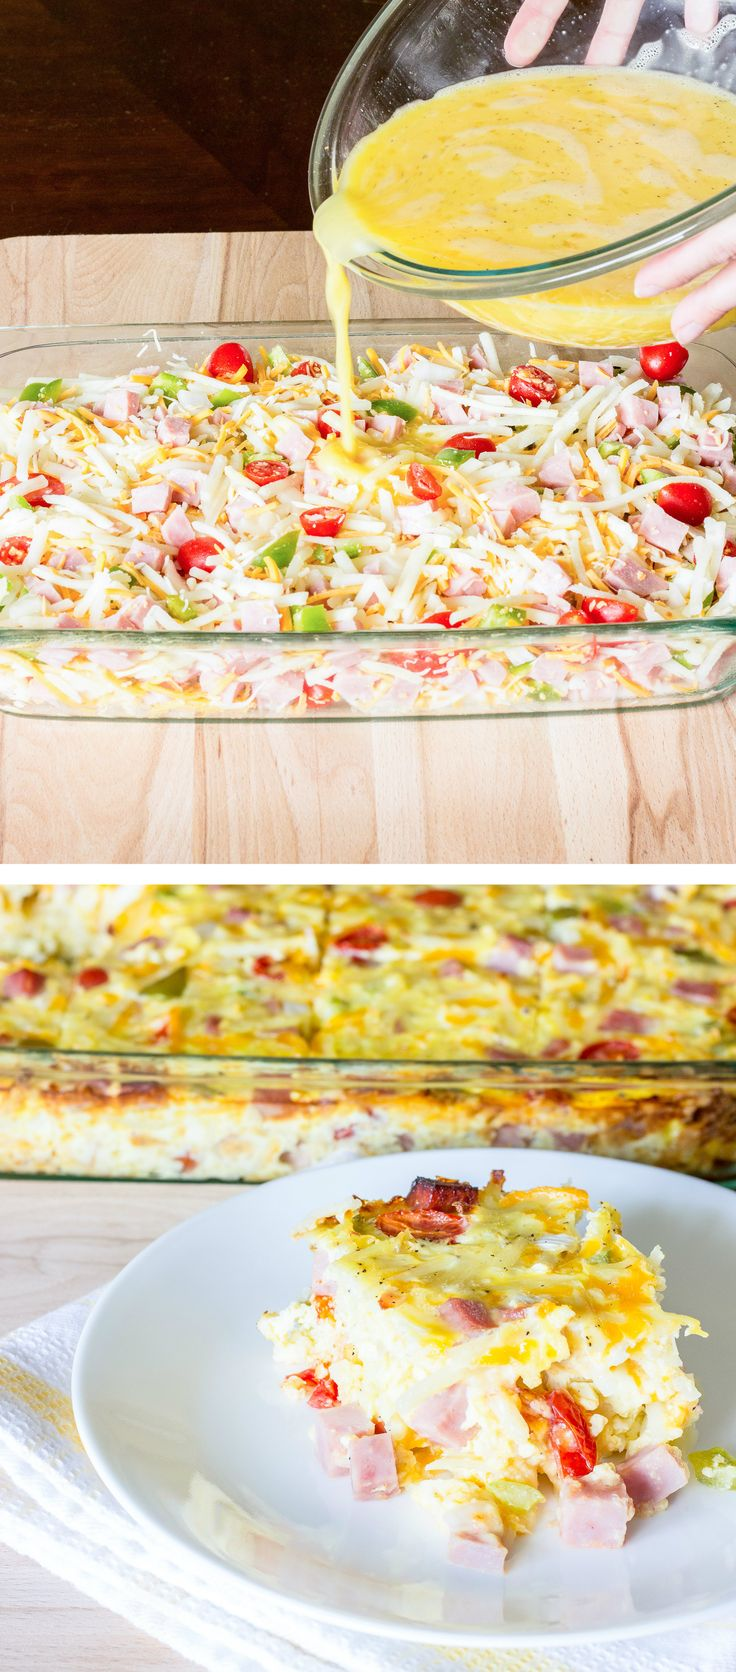 In this easy breakfast casserole, eggs are poured over hash browns, bell pepper, onion, tomato, garlic, and cheese; then baked.